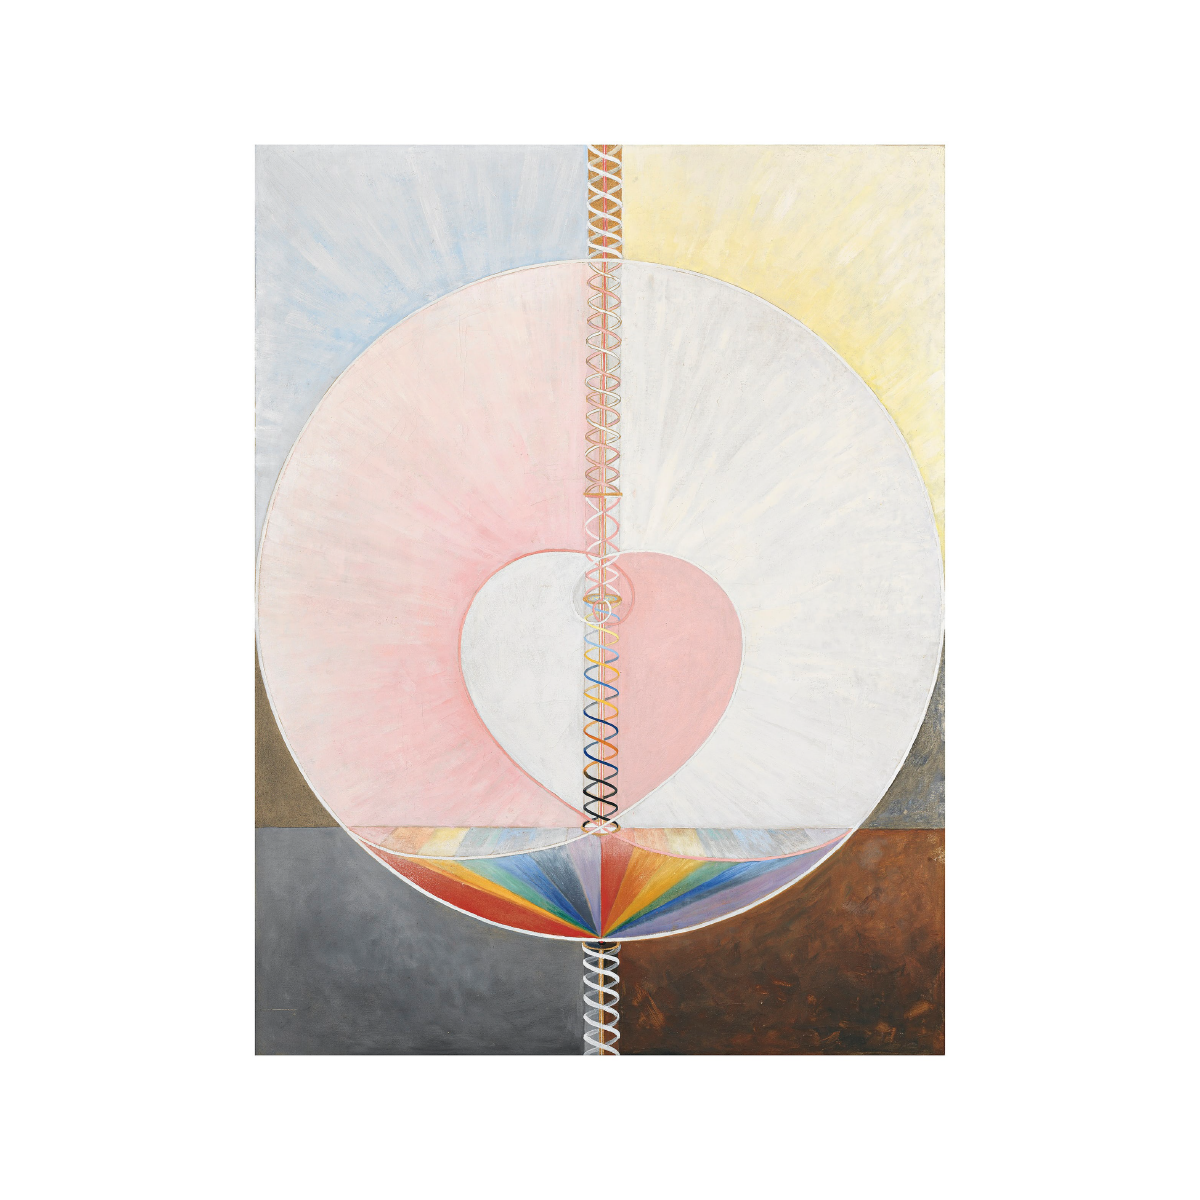 uncover-body-hilmaafklint-01.png